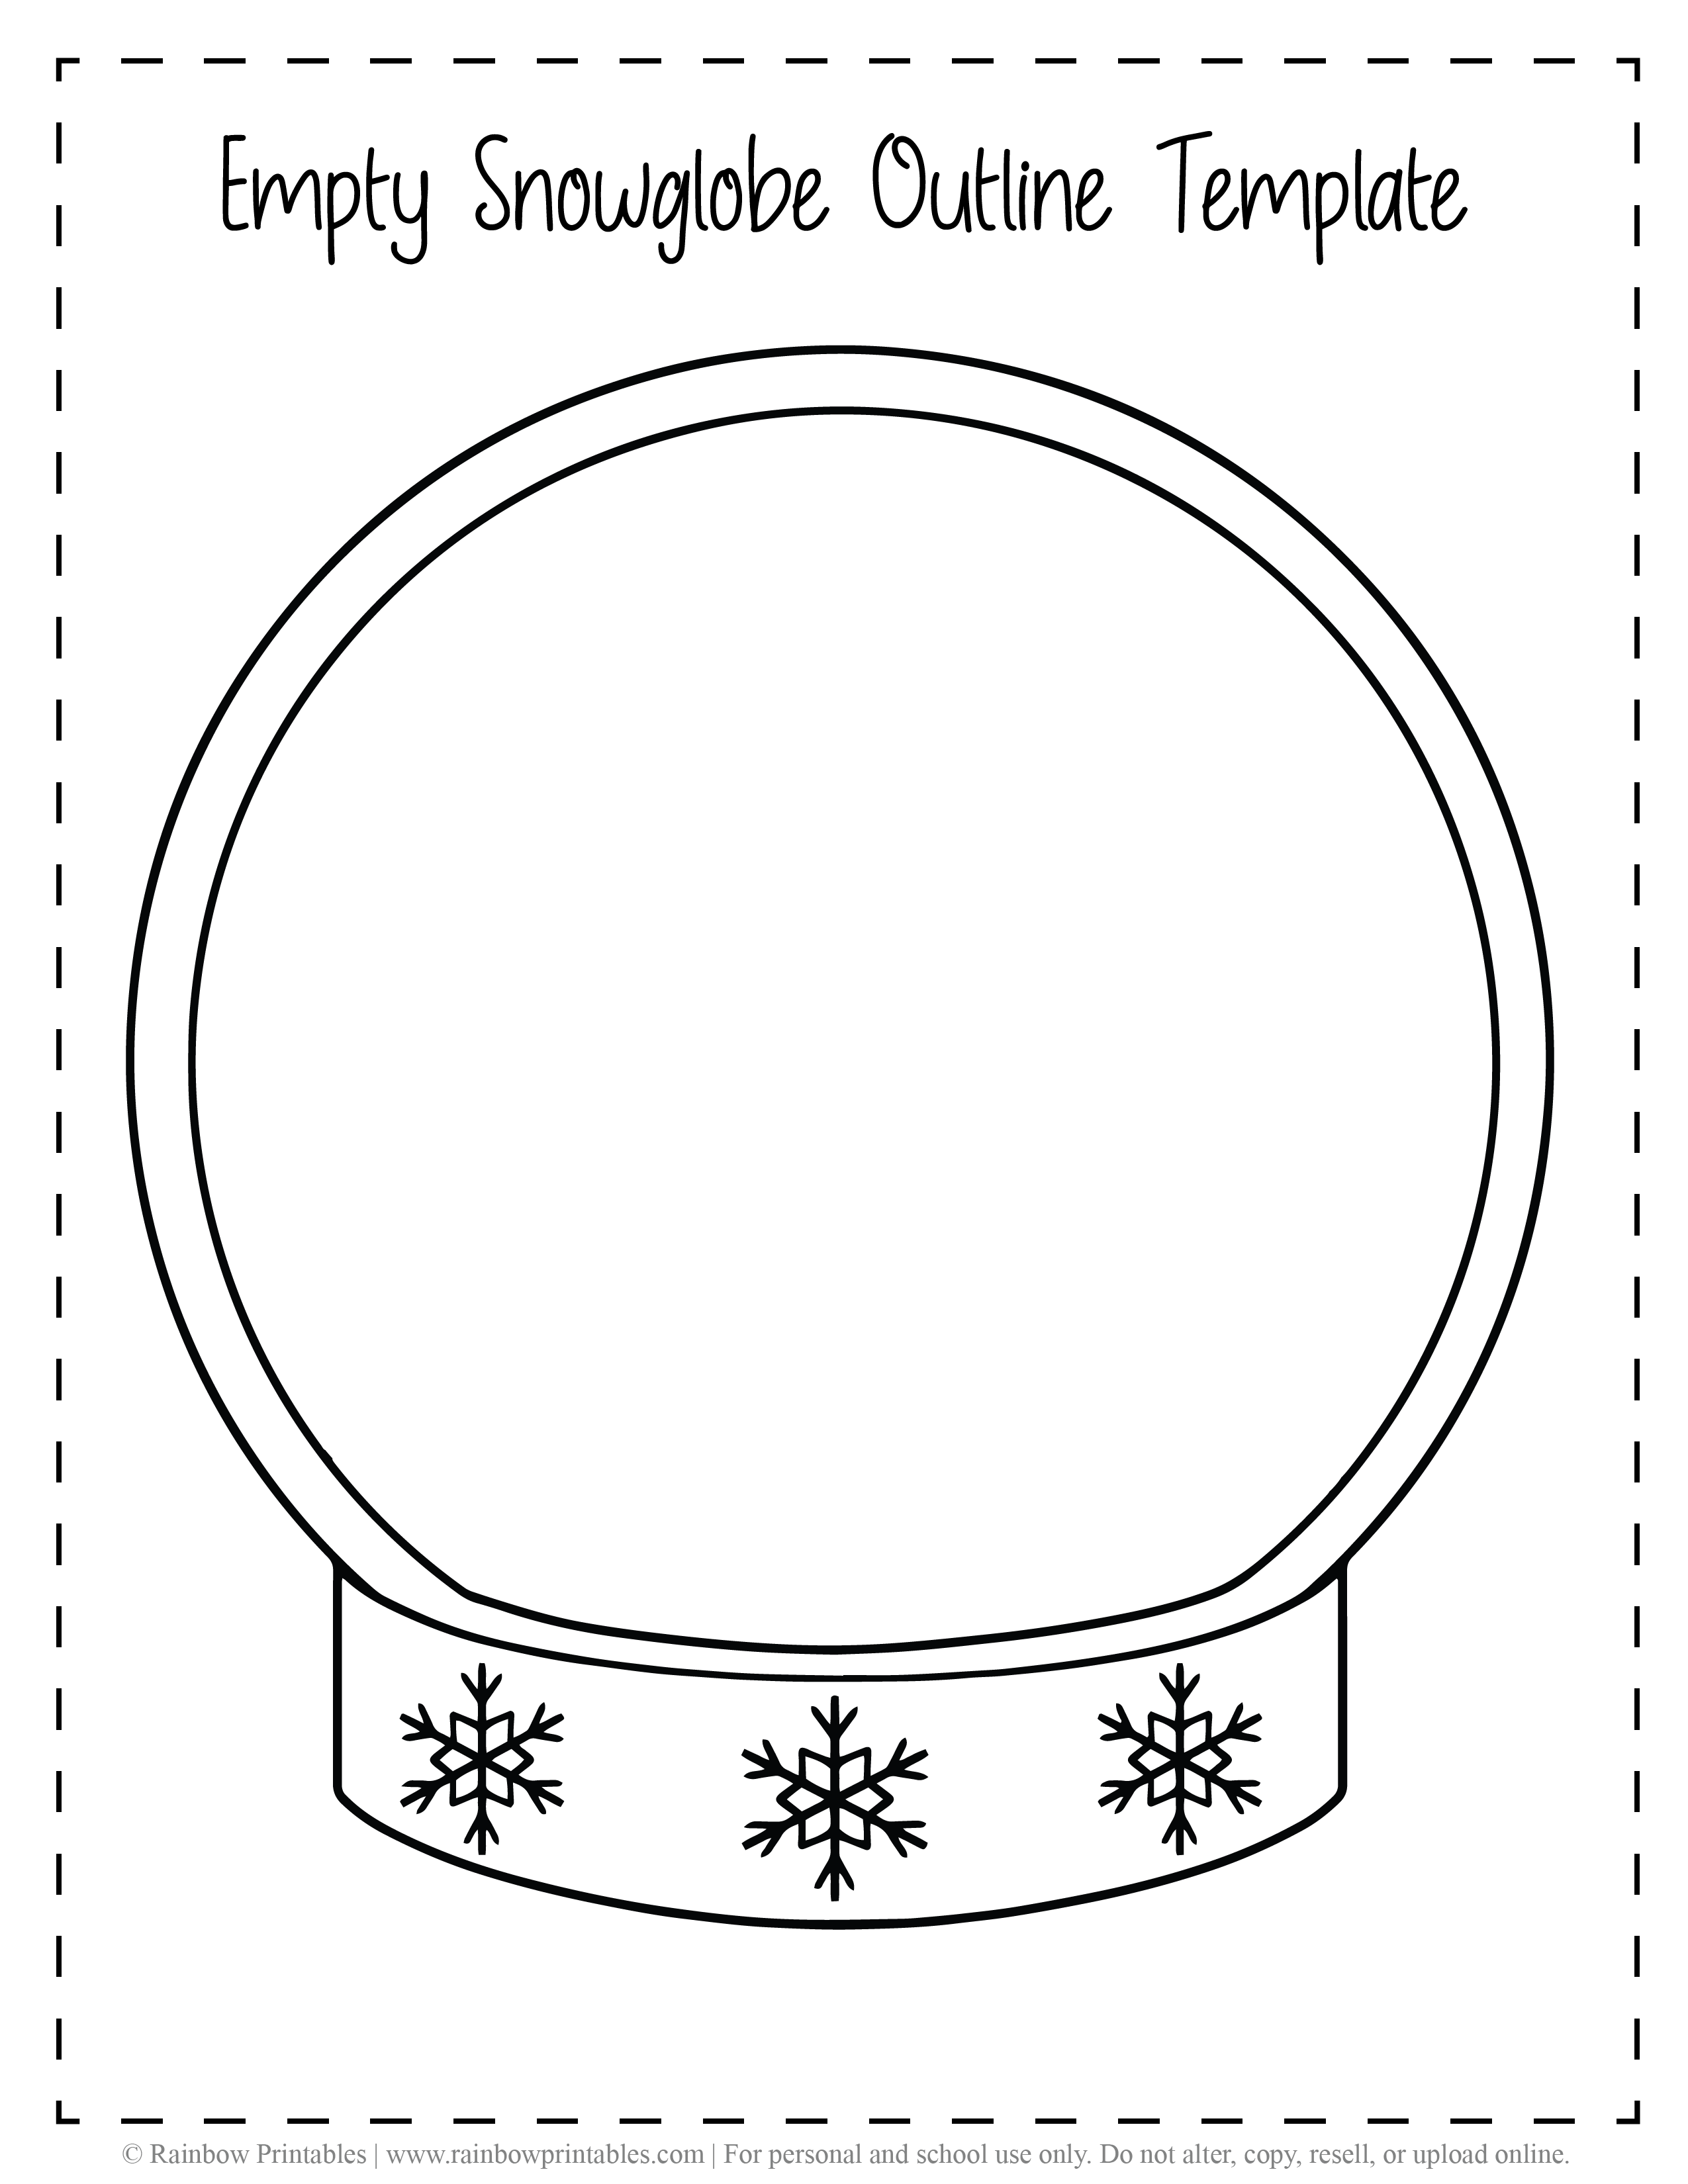 Empty Snowglobe Outline Template Christmas Xmas Free Printable Freebie Arts Crafts for Kids Black White